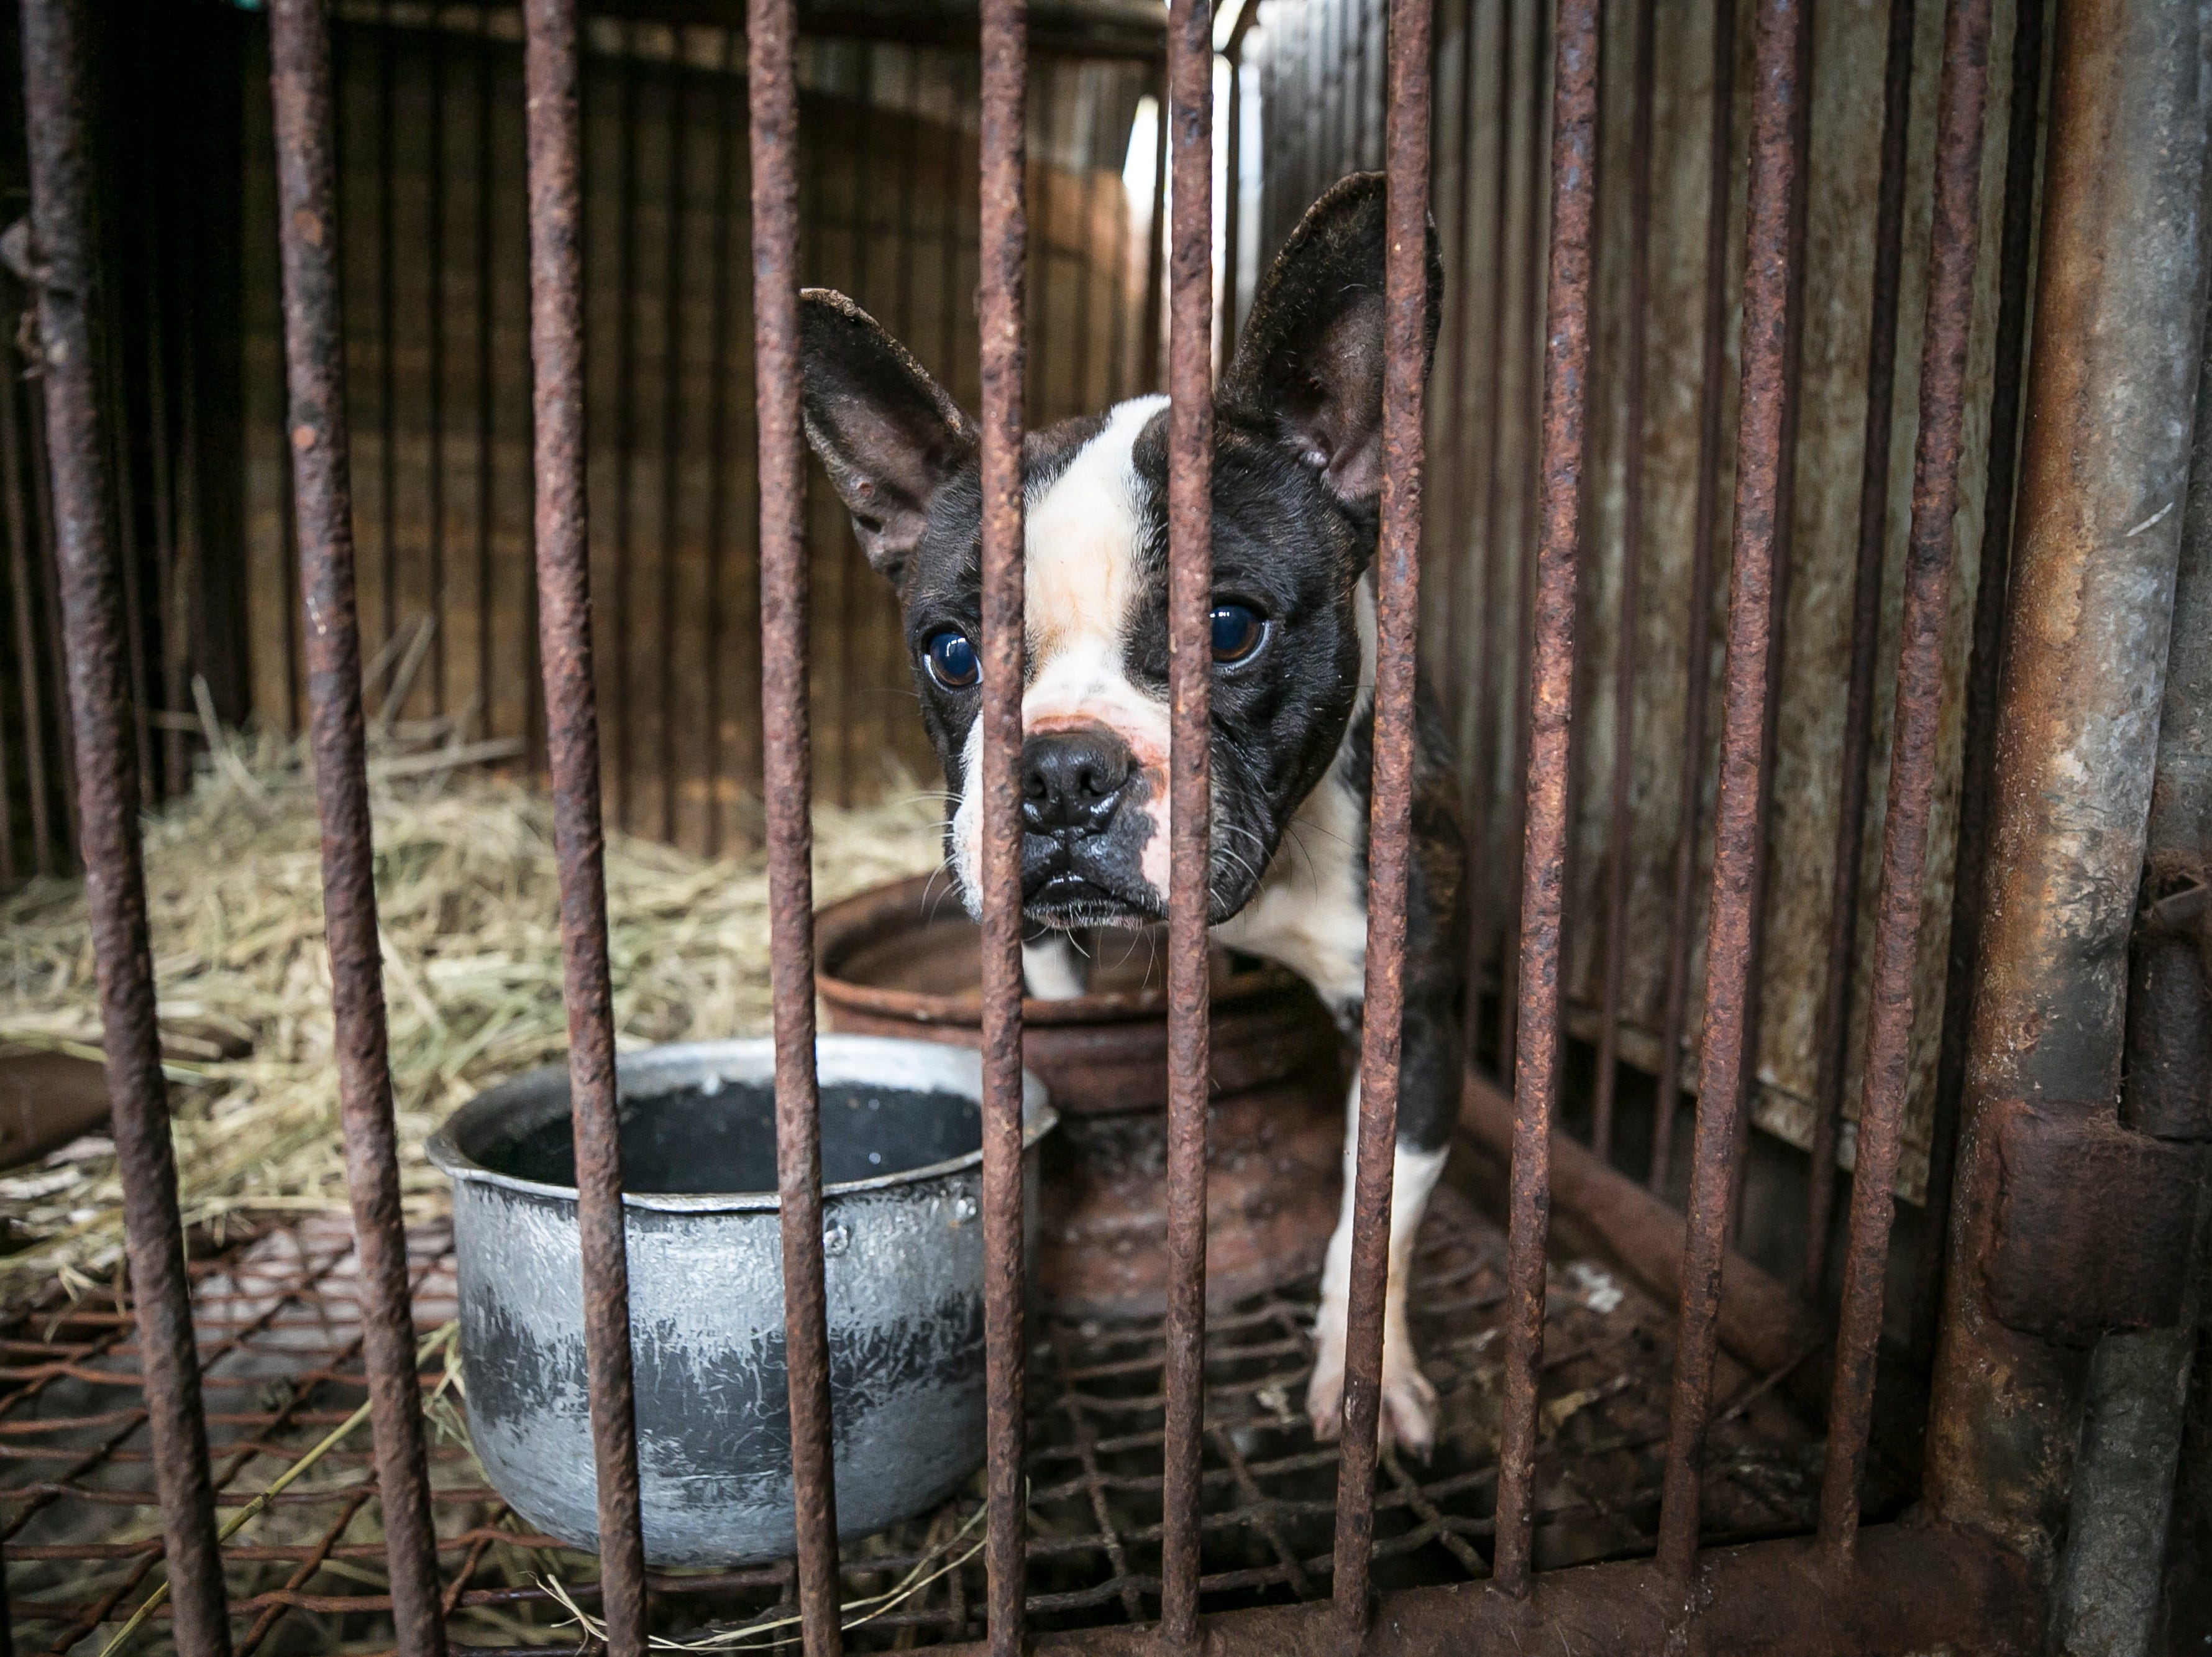 A dog is shown locked in a cage at a dog meat farm in Hongseong-gun, South Korea, on Friday, January 11, 2019. The operation is part of HSIs efforts to fight the dog meat trade throughout Asia. In South Korea, the campaign includes working to raise awareness among Koreans about the plight of meat dogs being no different from the animals more and more of them are keeping as pets.